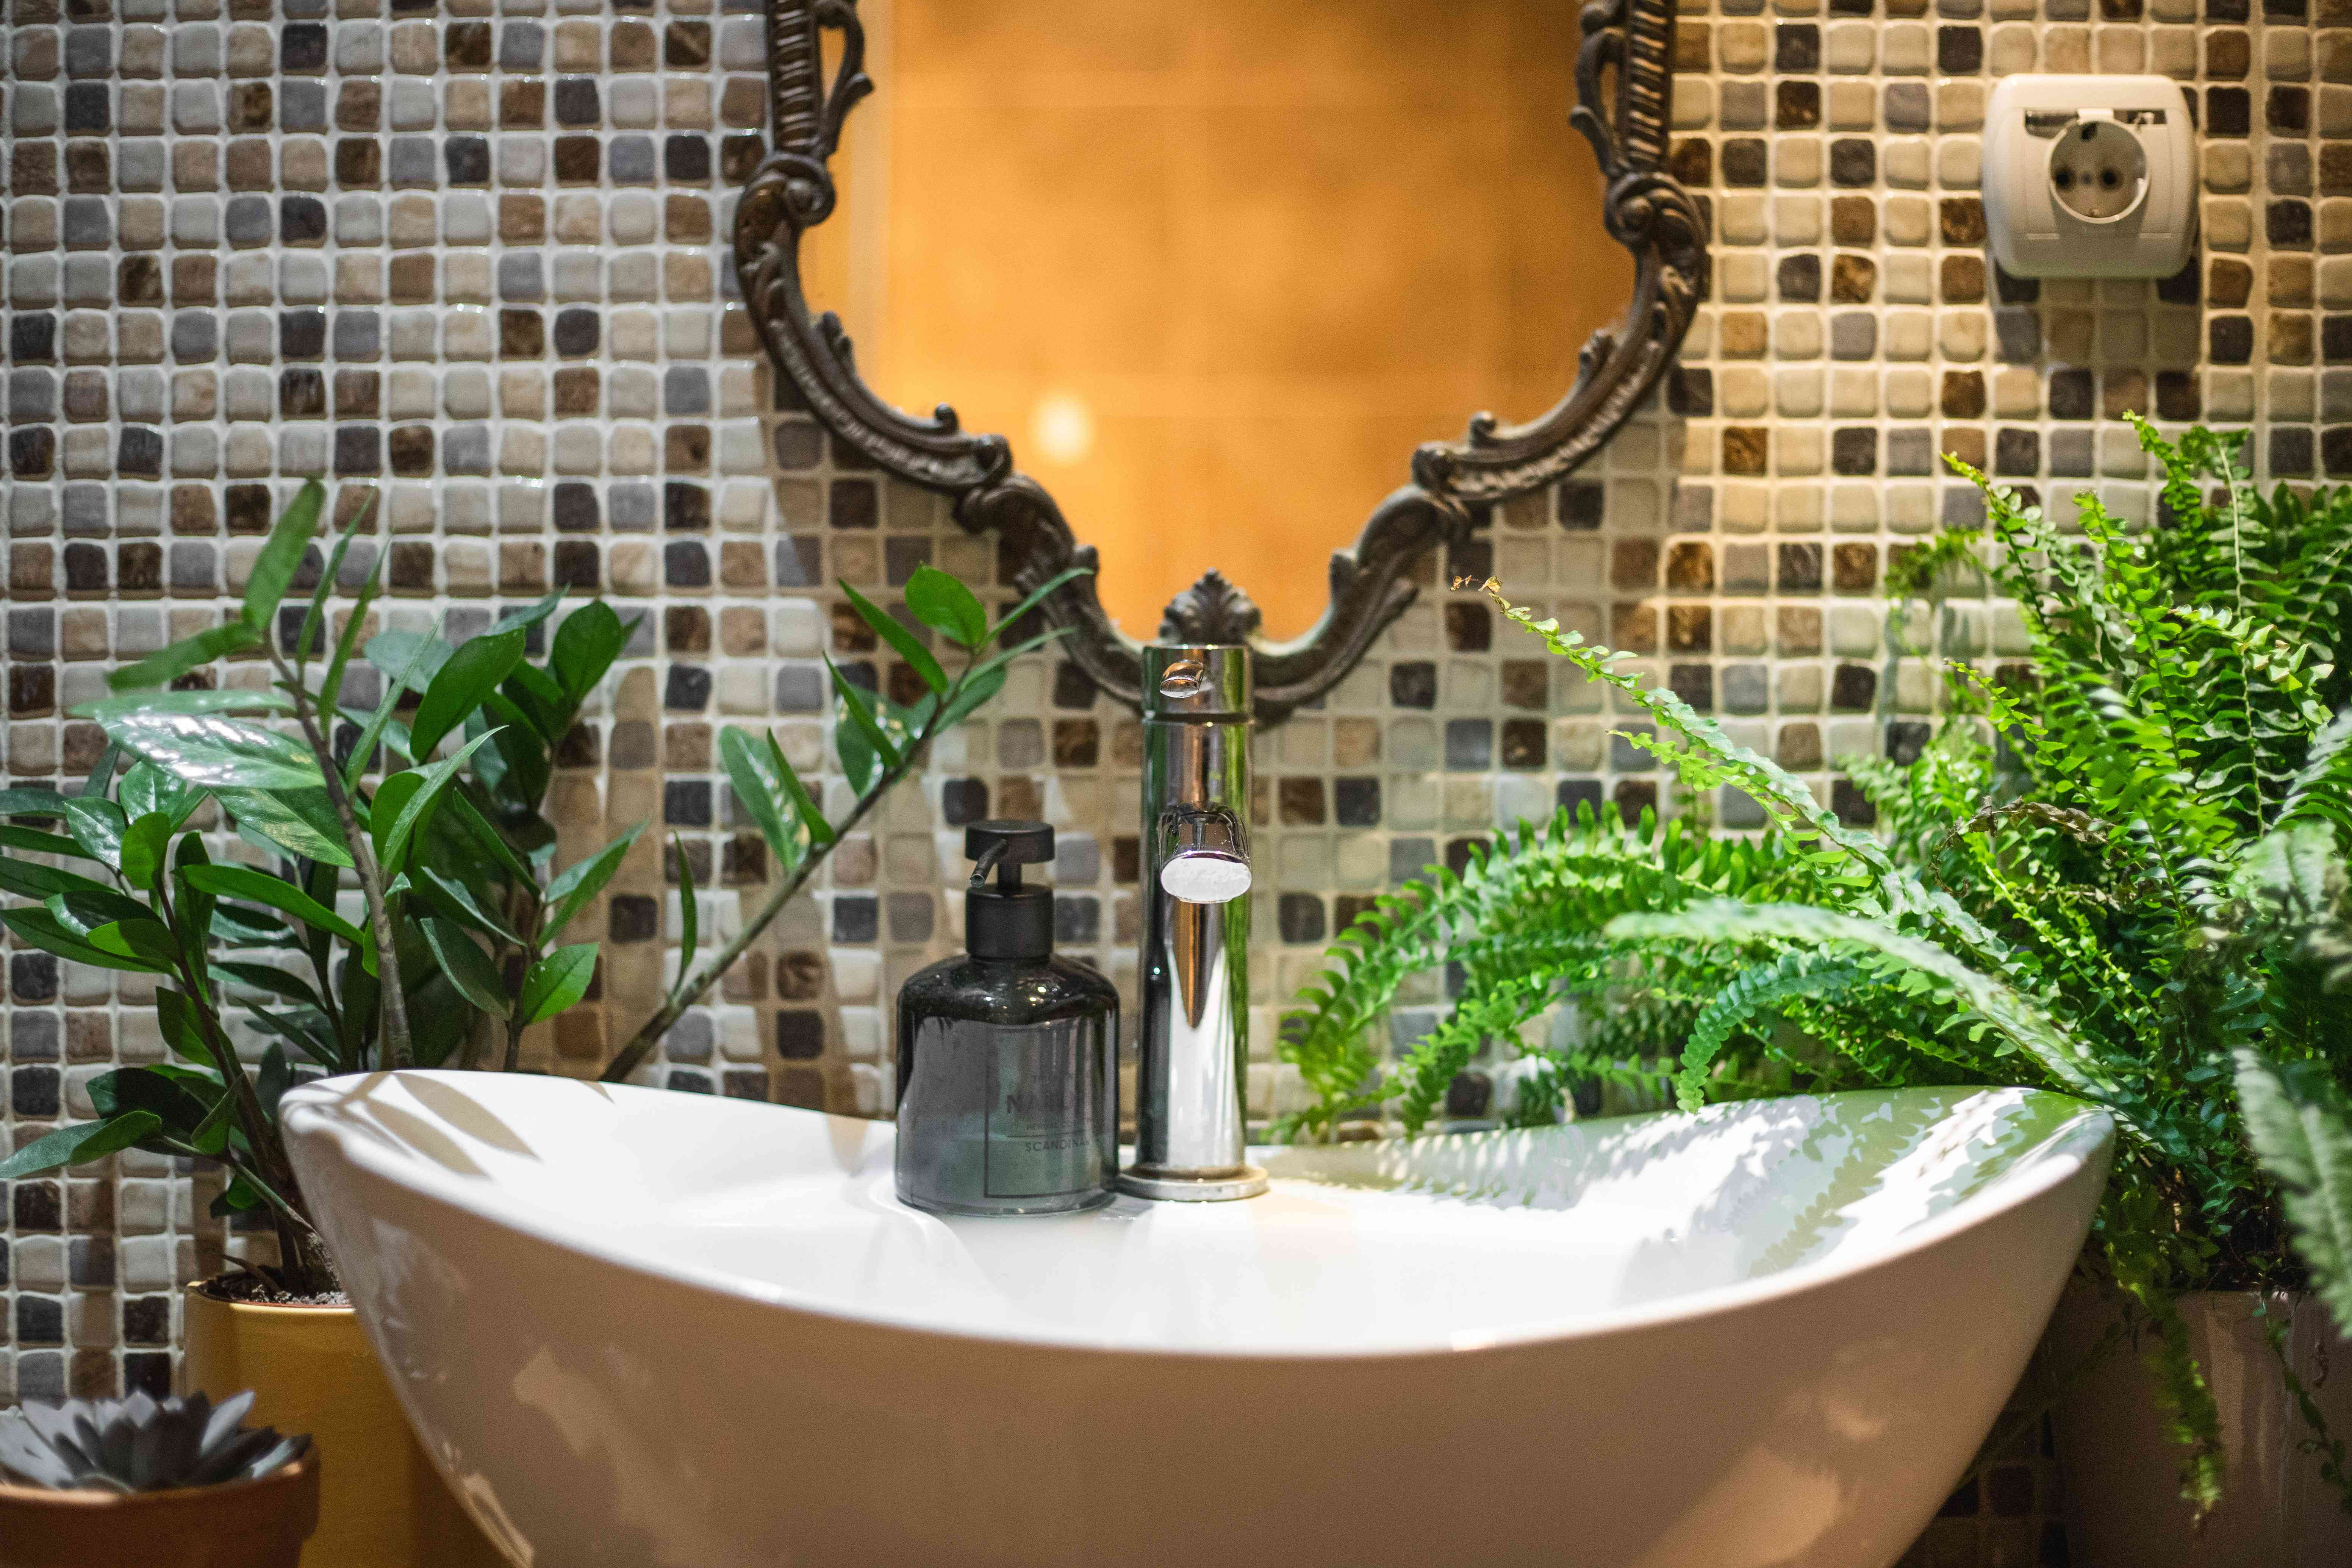 large scooped bathroom sink with tiled wall surrounded by ferns and other house plants